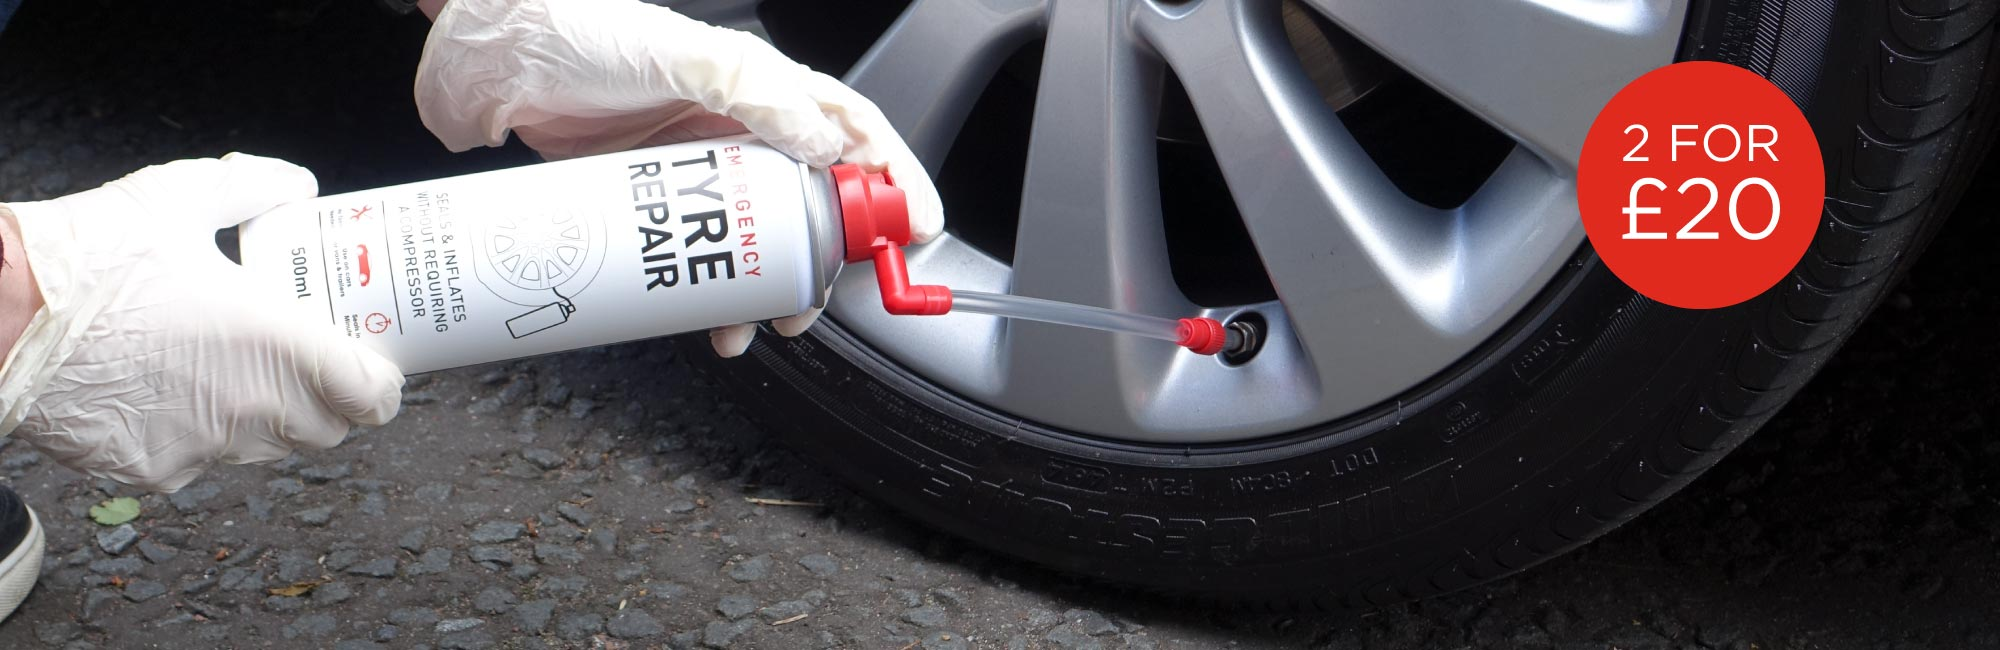 Emergency Tyre Inflator - 2 for £20